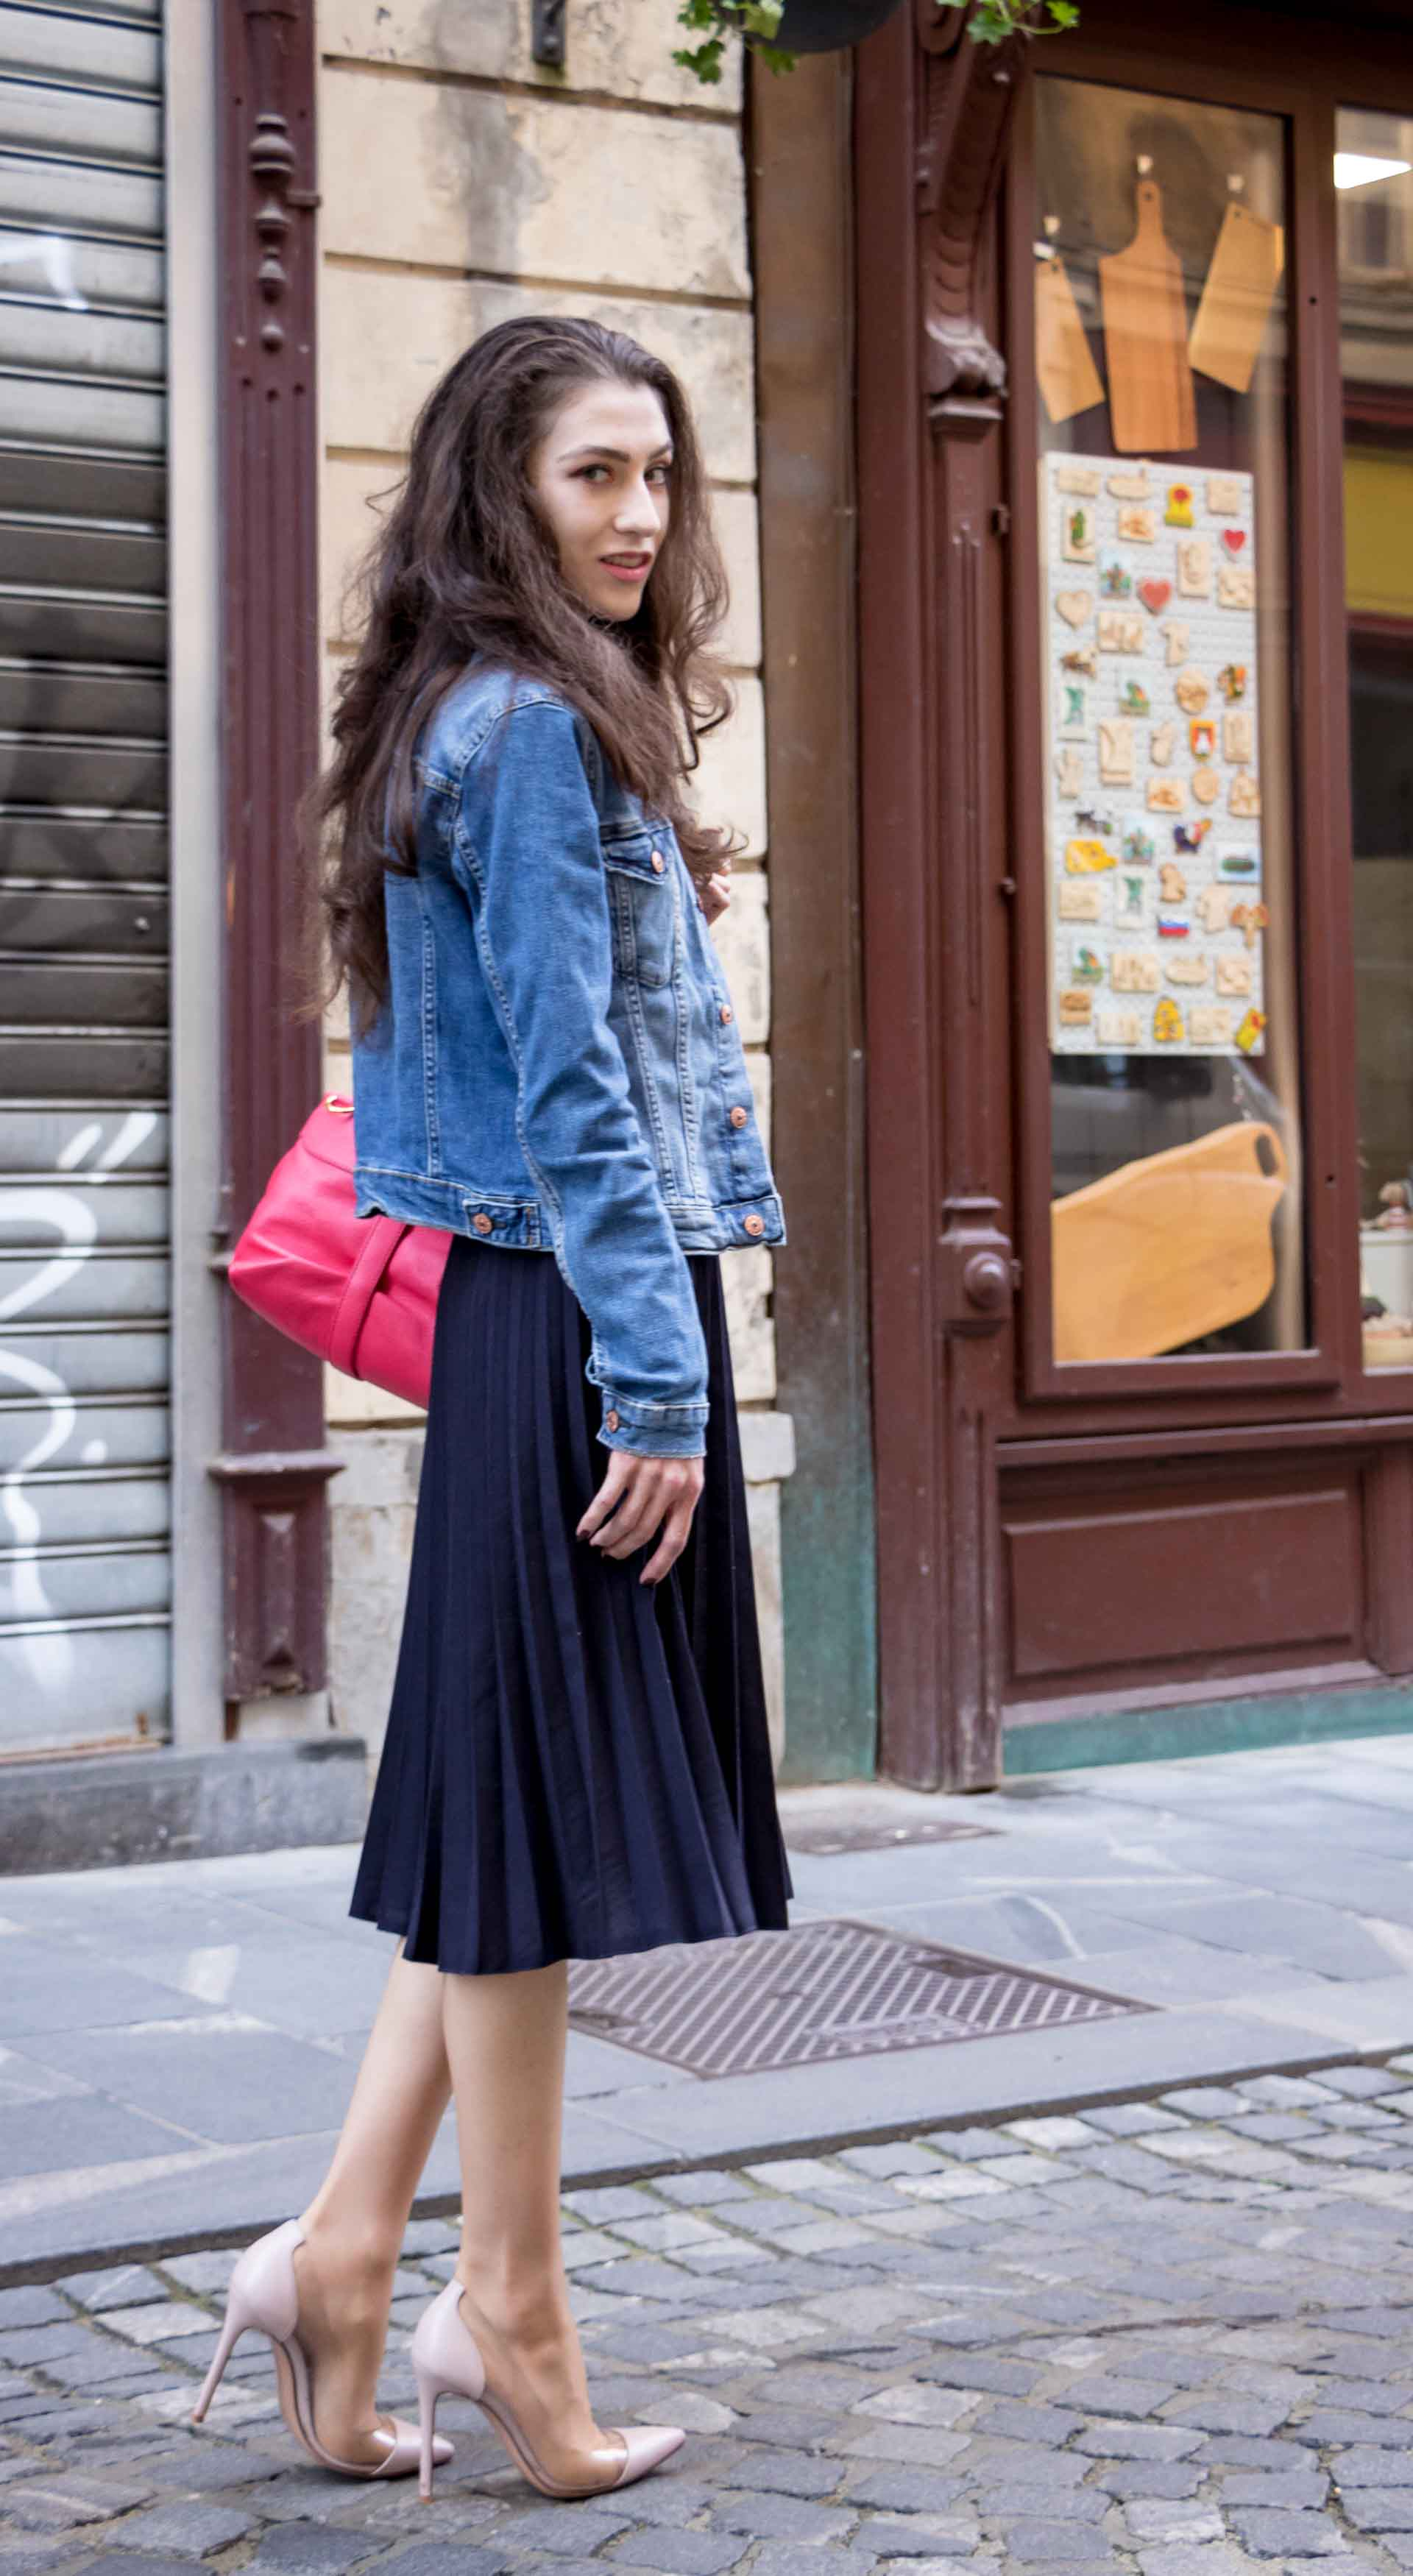 Veronika Lipar Fashion Blogger of Brunette from Wall Street wearing H&M denim jacket, floral blouse, midi pleated skirt, Gianvito Rossi plexi pumps, pink top handle bag looking cool and elegant